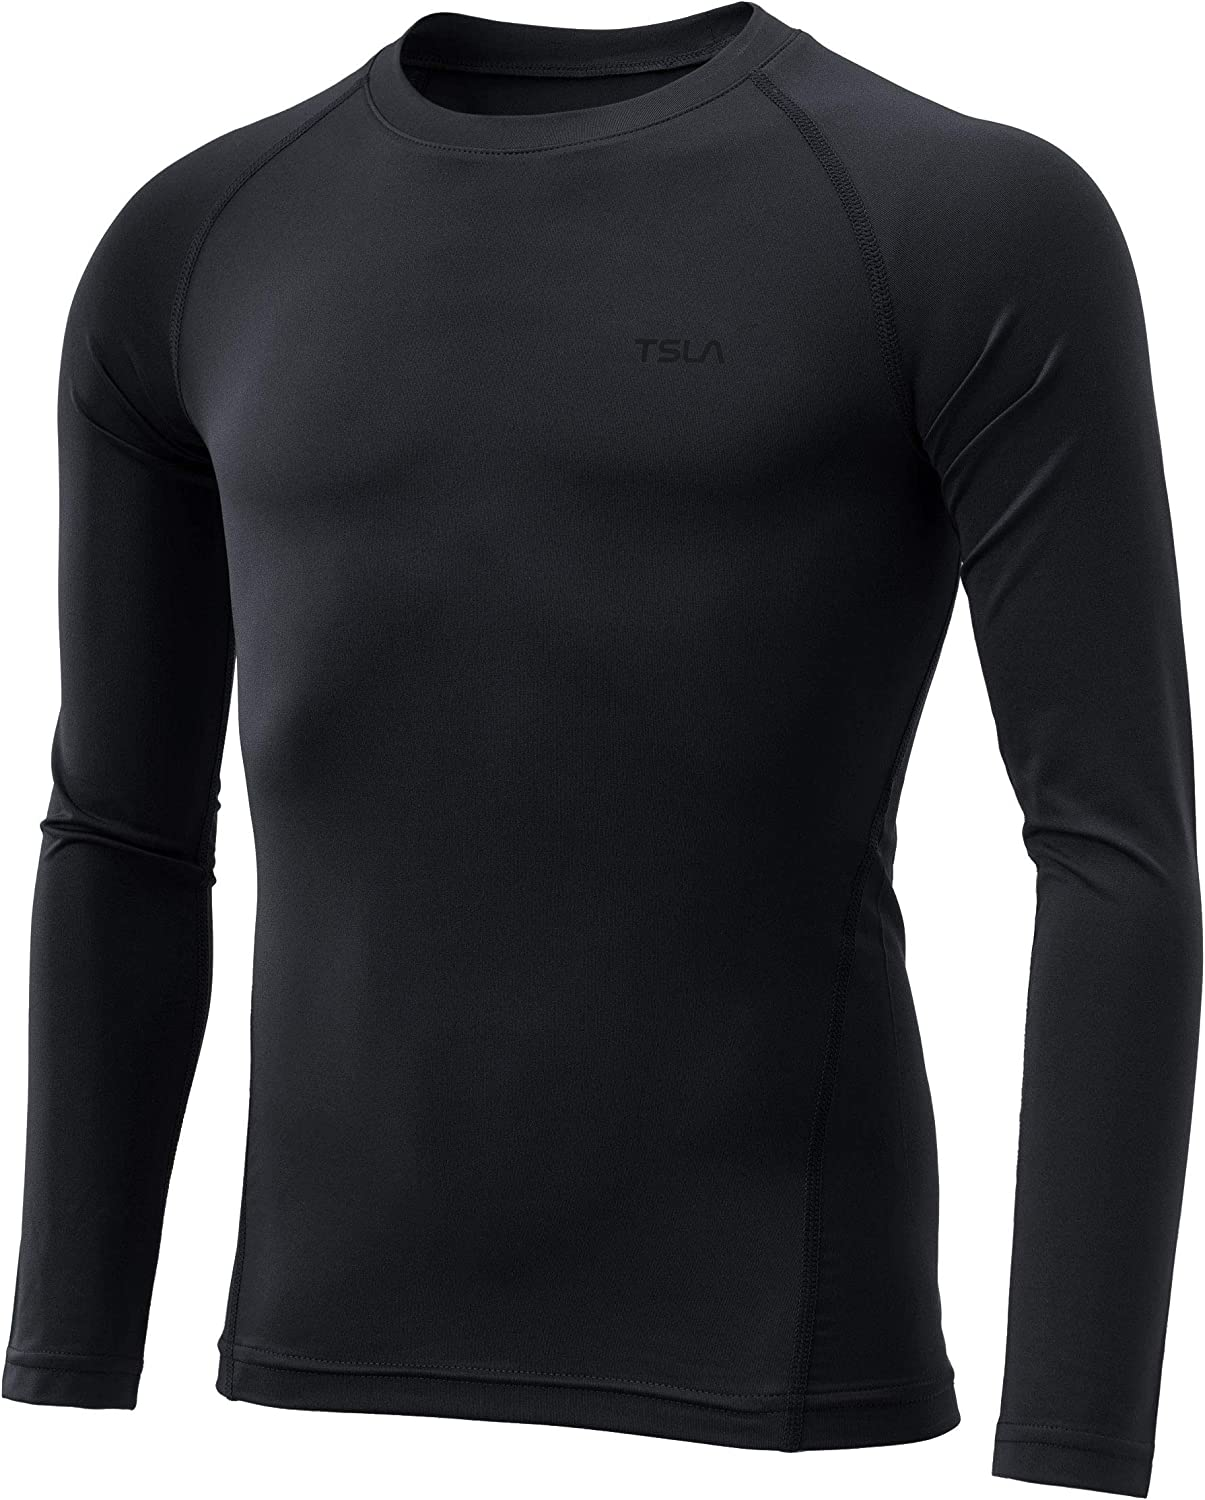 TSLA Boy's/Girl's Thermal Long Sleeve Tops, Crew Neck Fleece Lined Compression Base Layer Shirts: Clothing